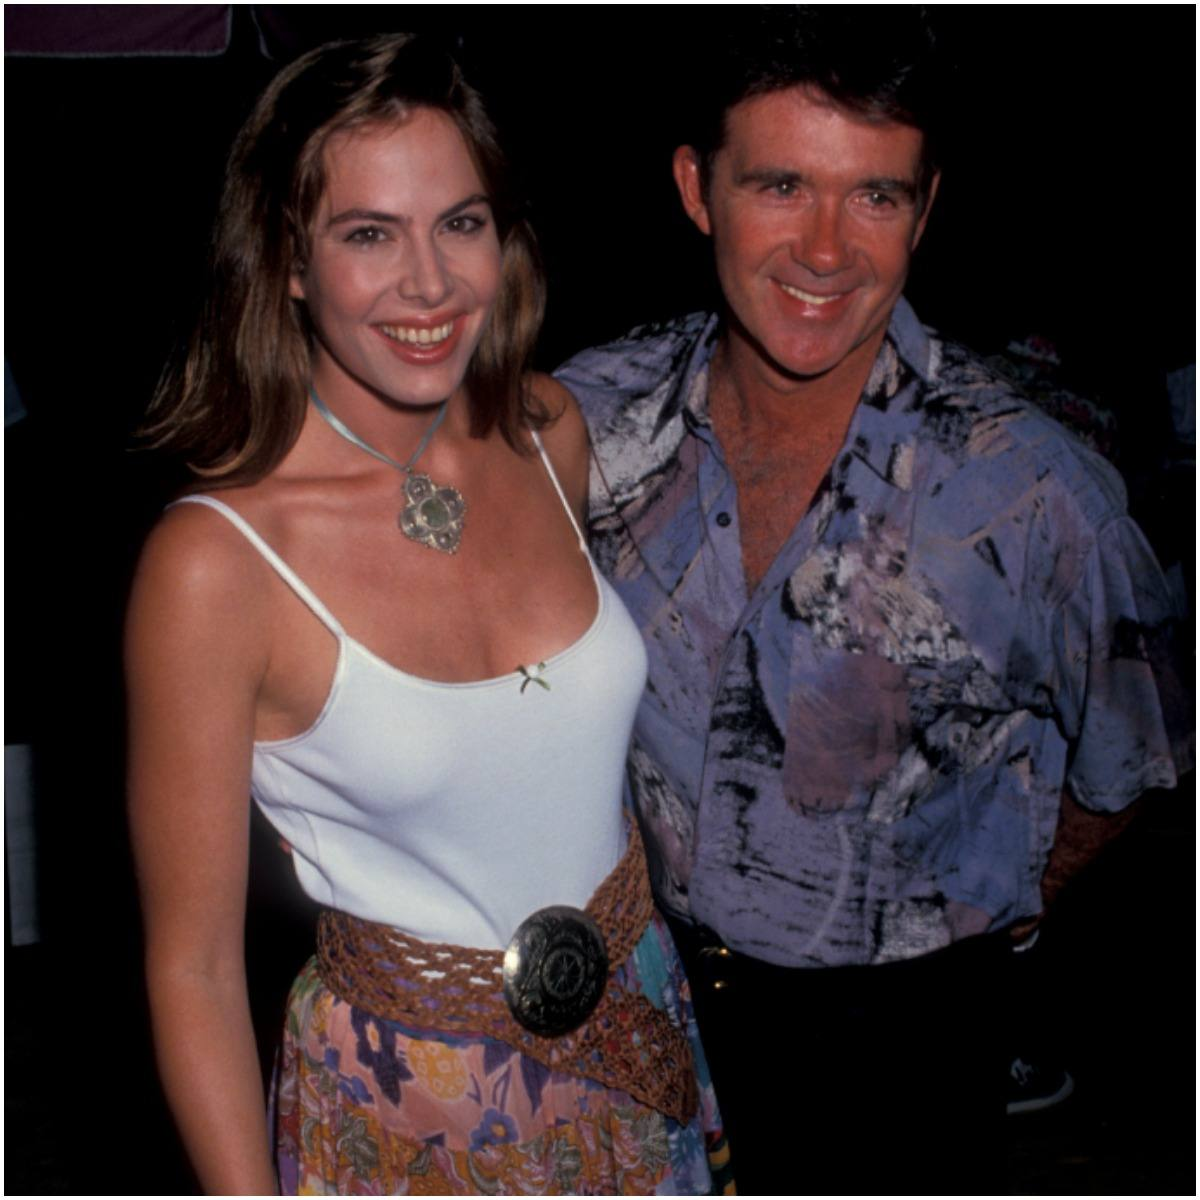 Alan Thicke with wife Gina Tolleson